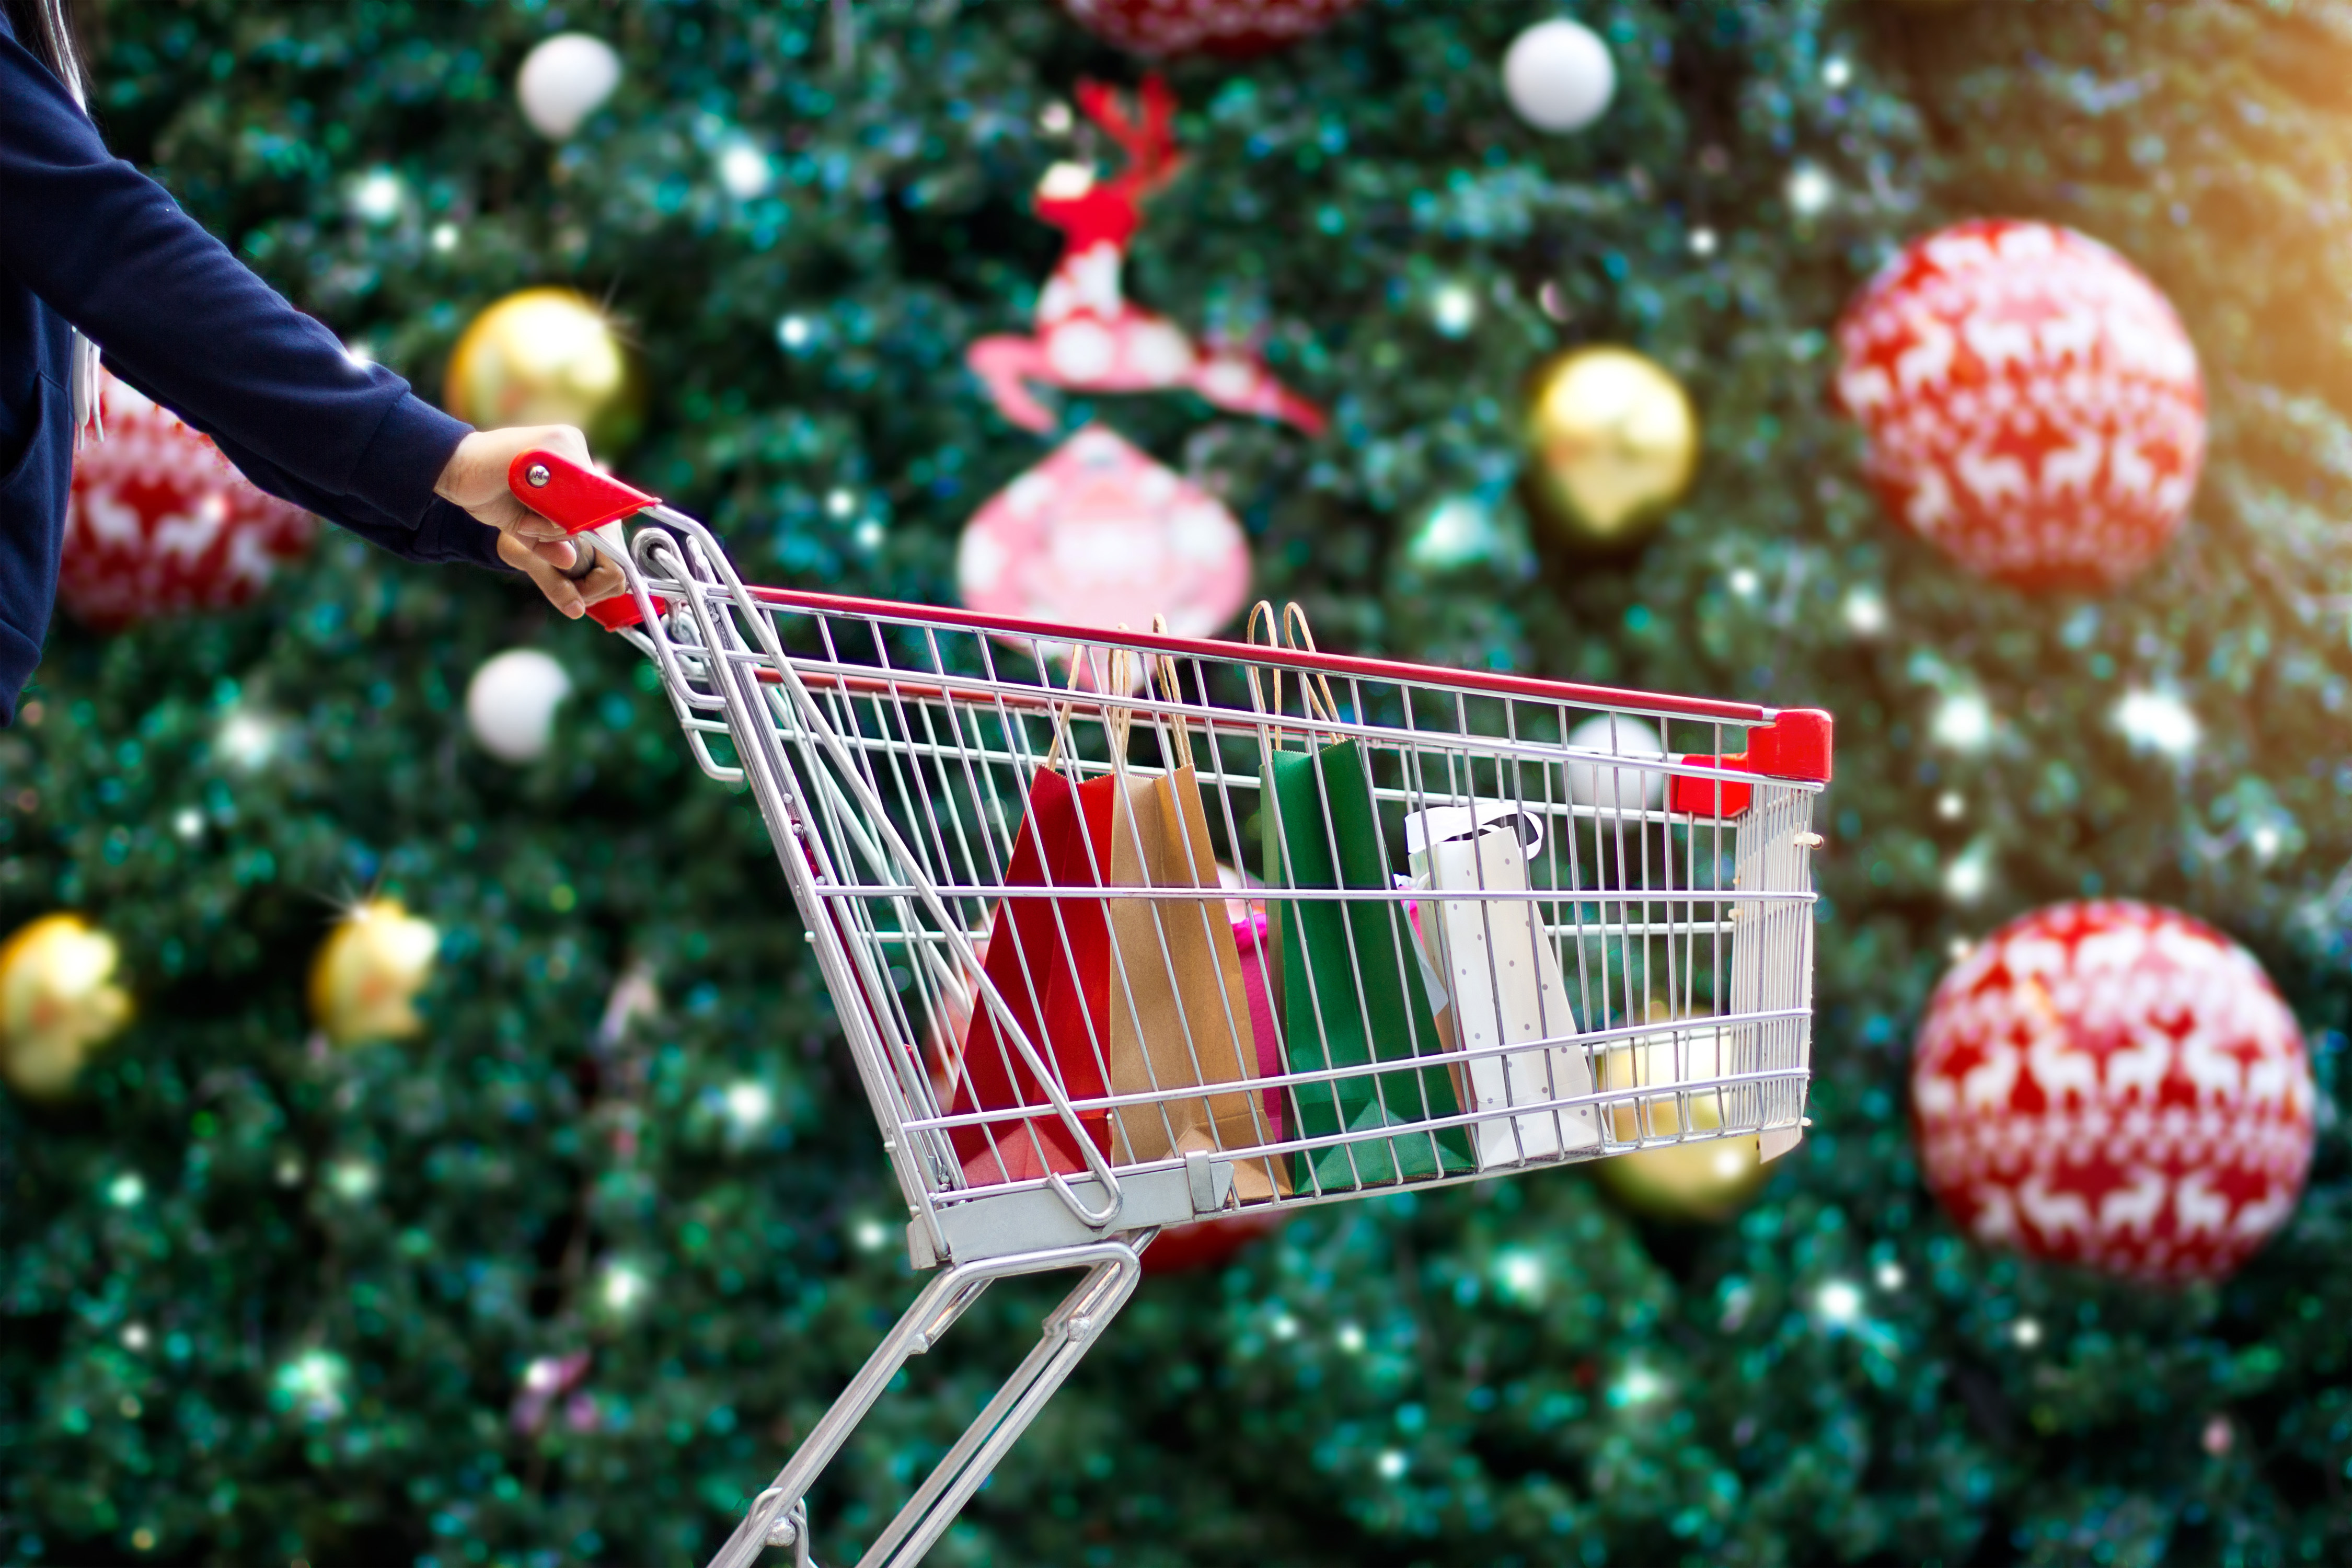 Pictured is a shopping cart with bags. SHUTTERSTOCK/ PopTika